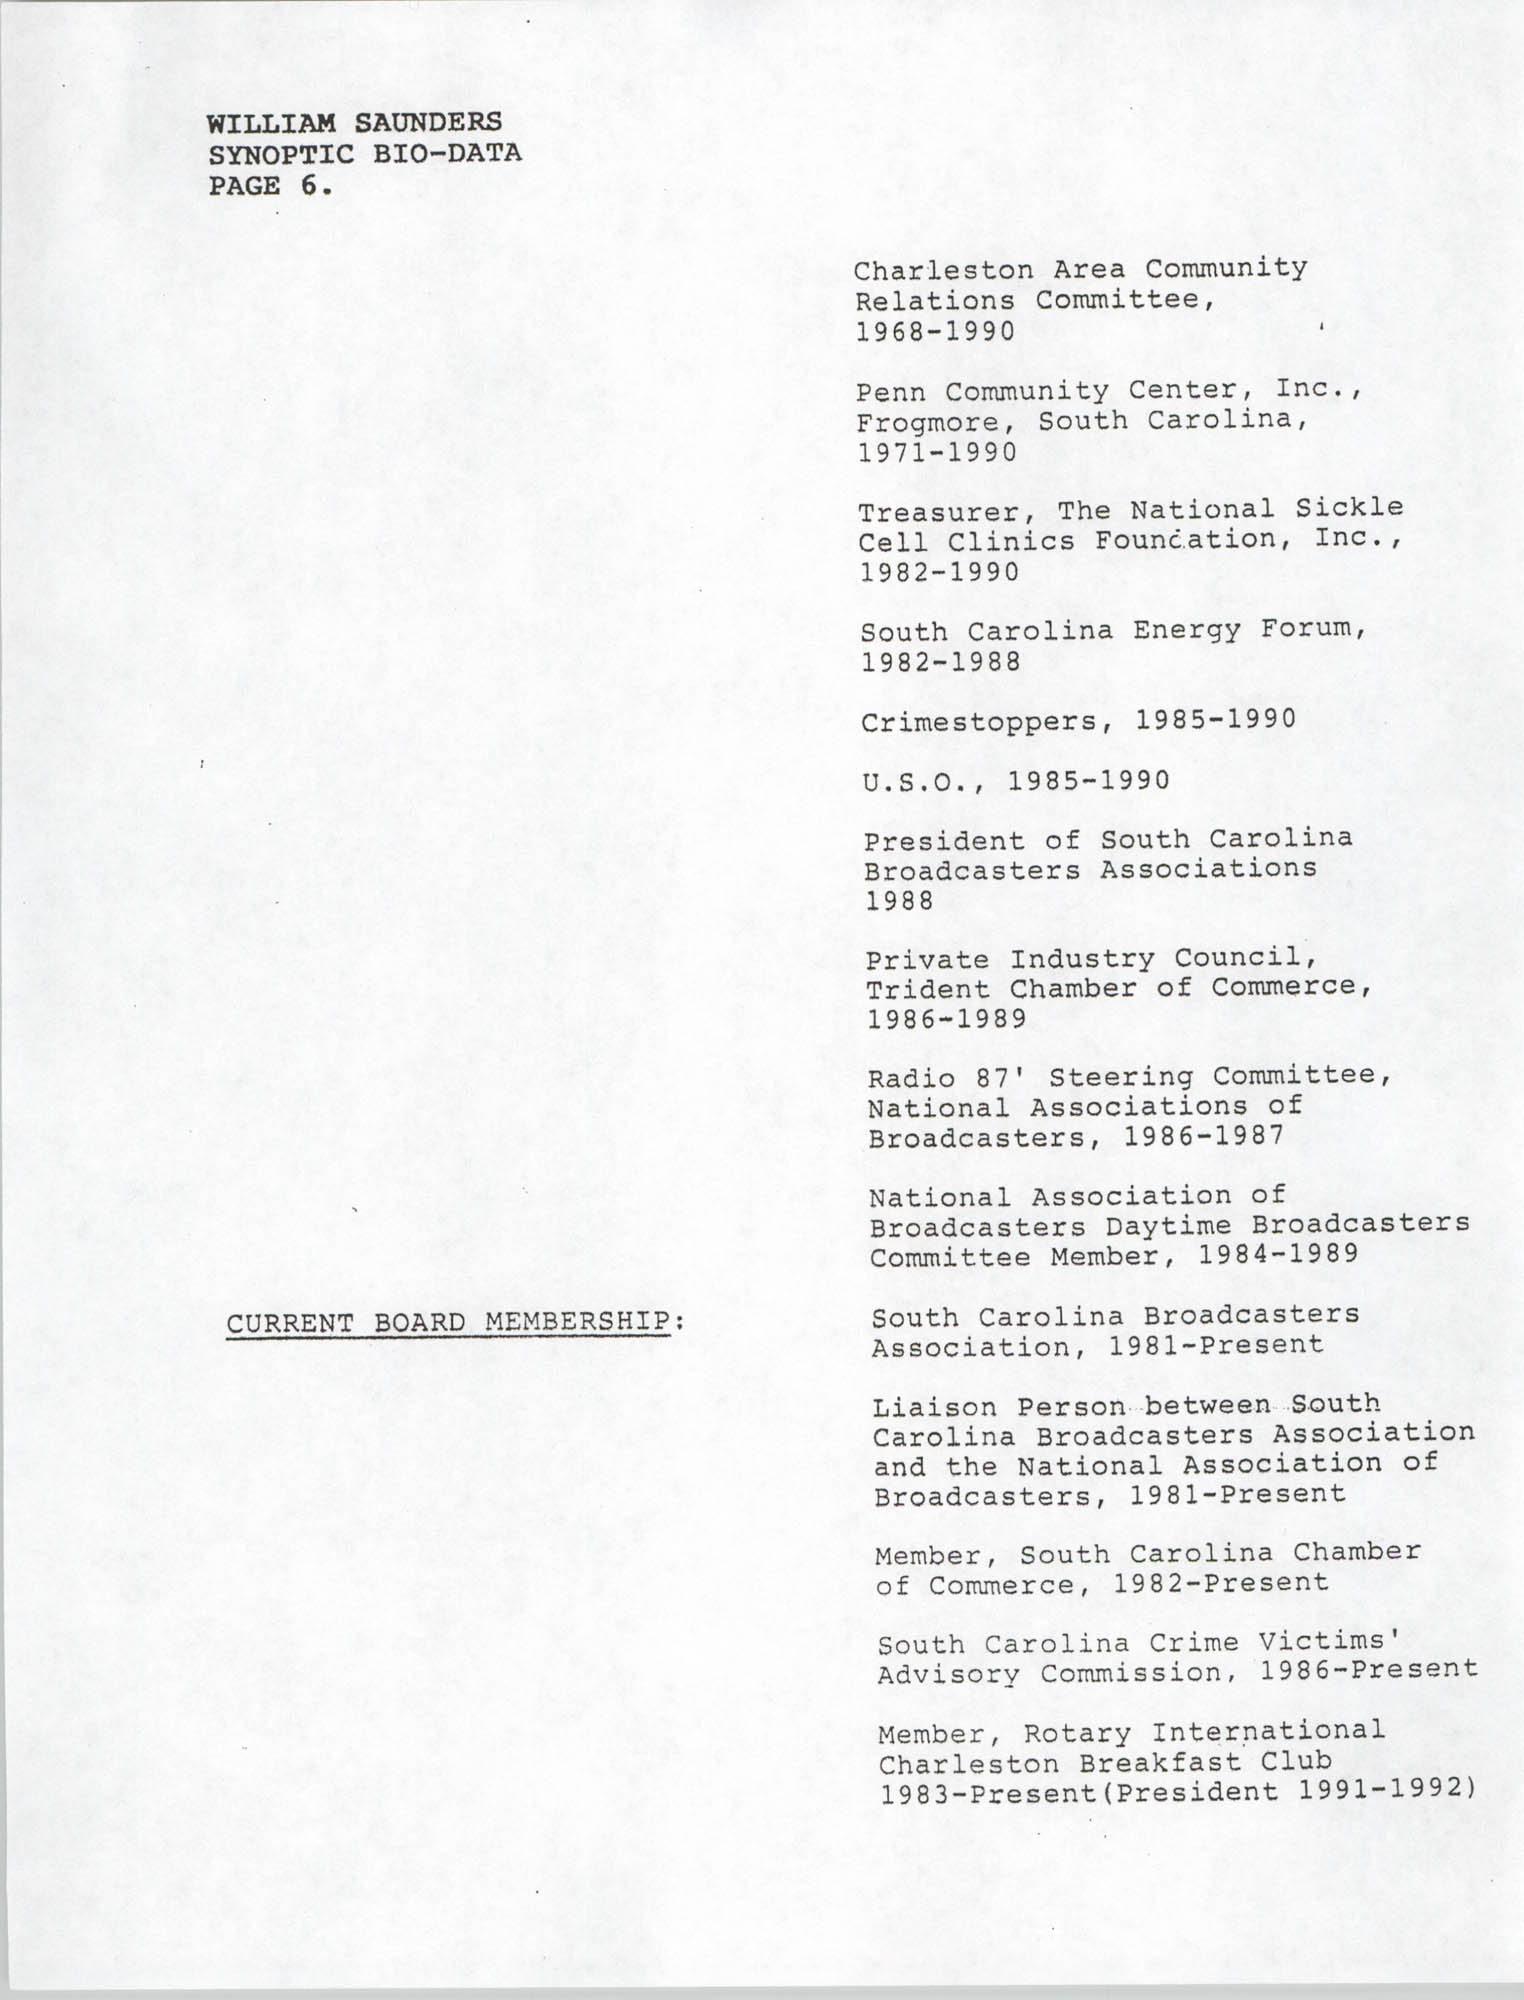 Synopitic Bio-Data on William Saunders, Page 6